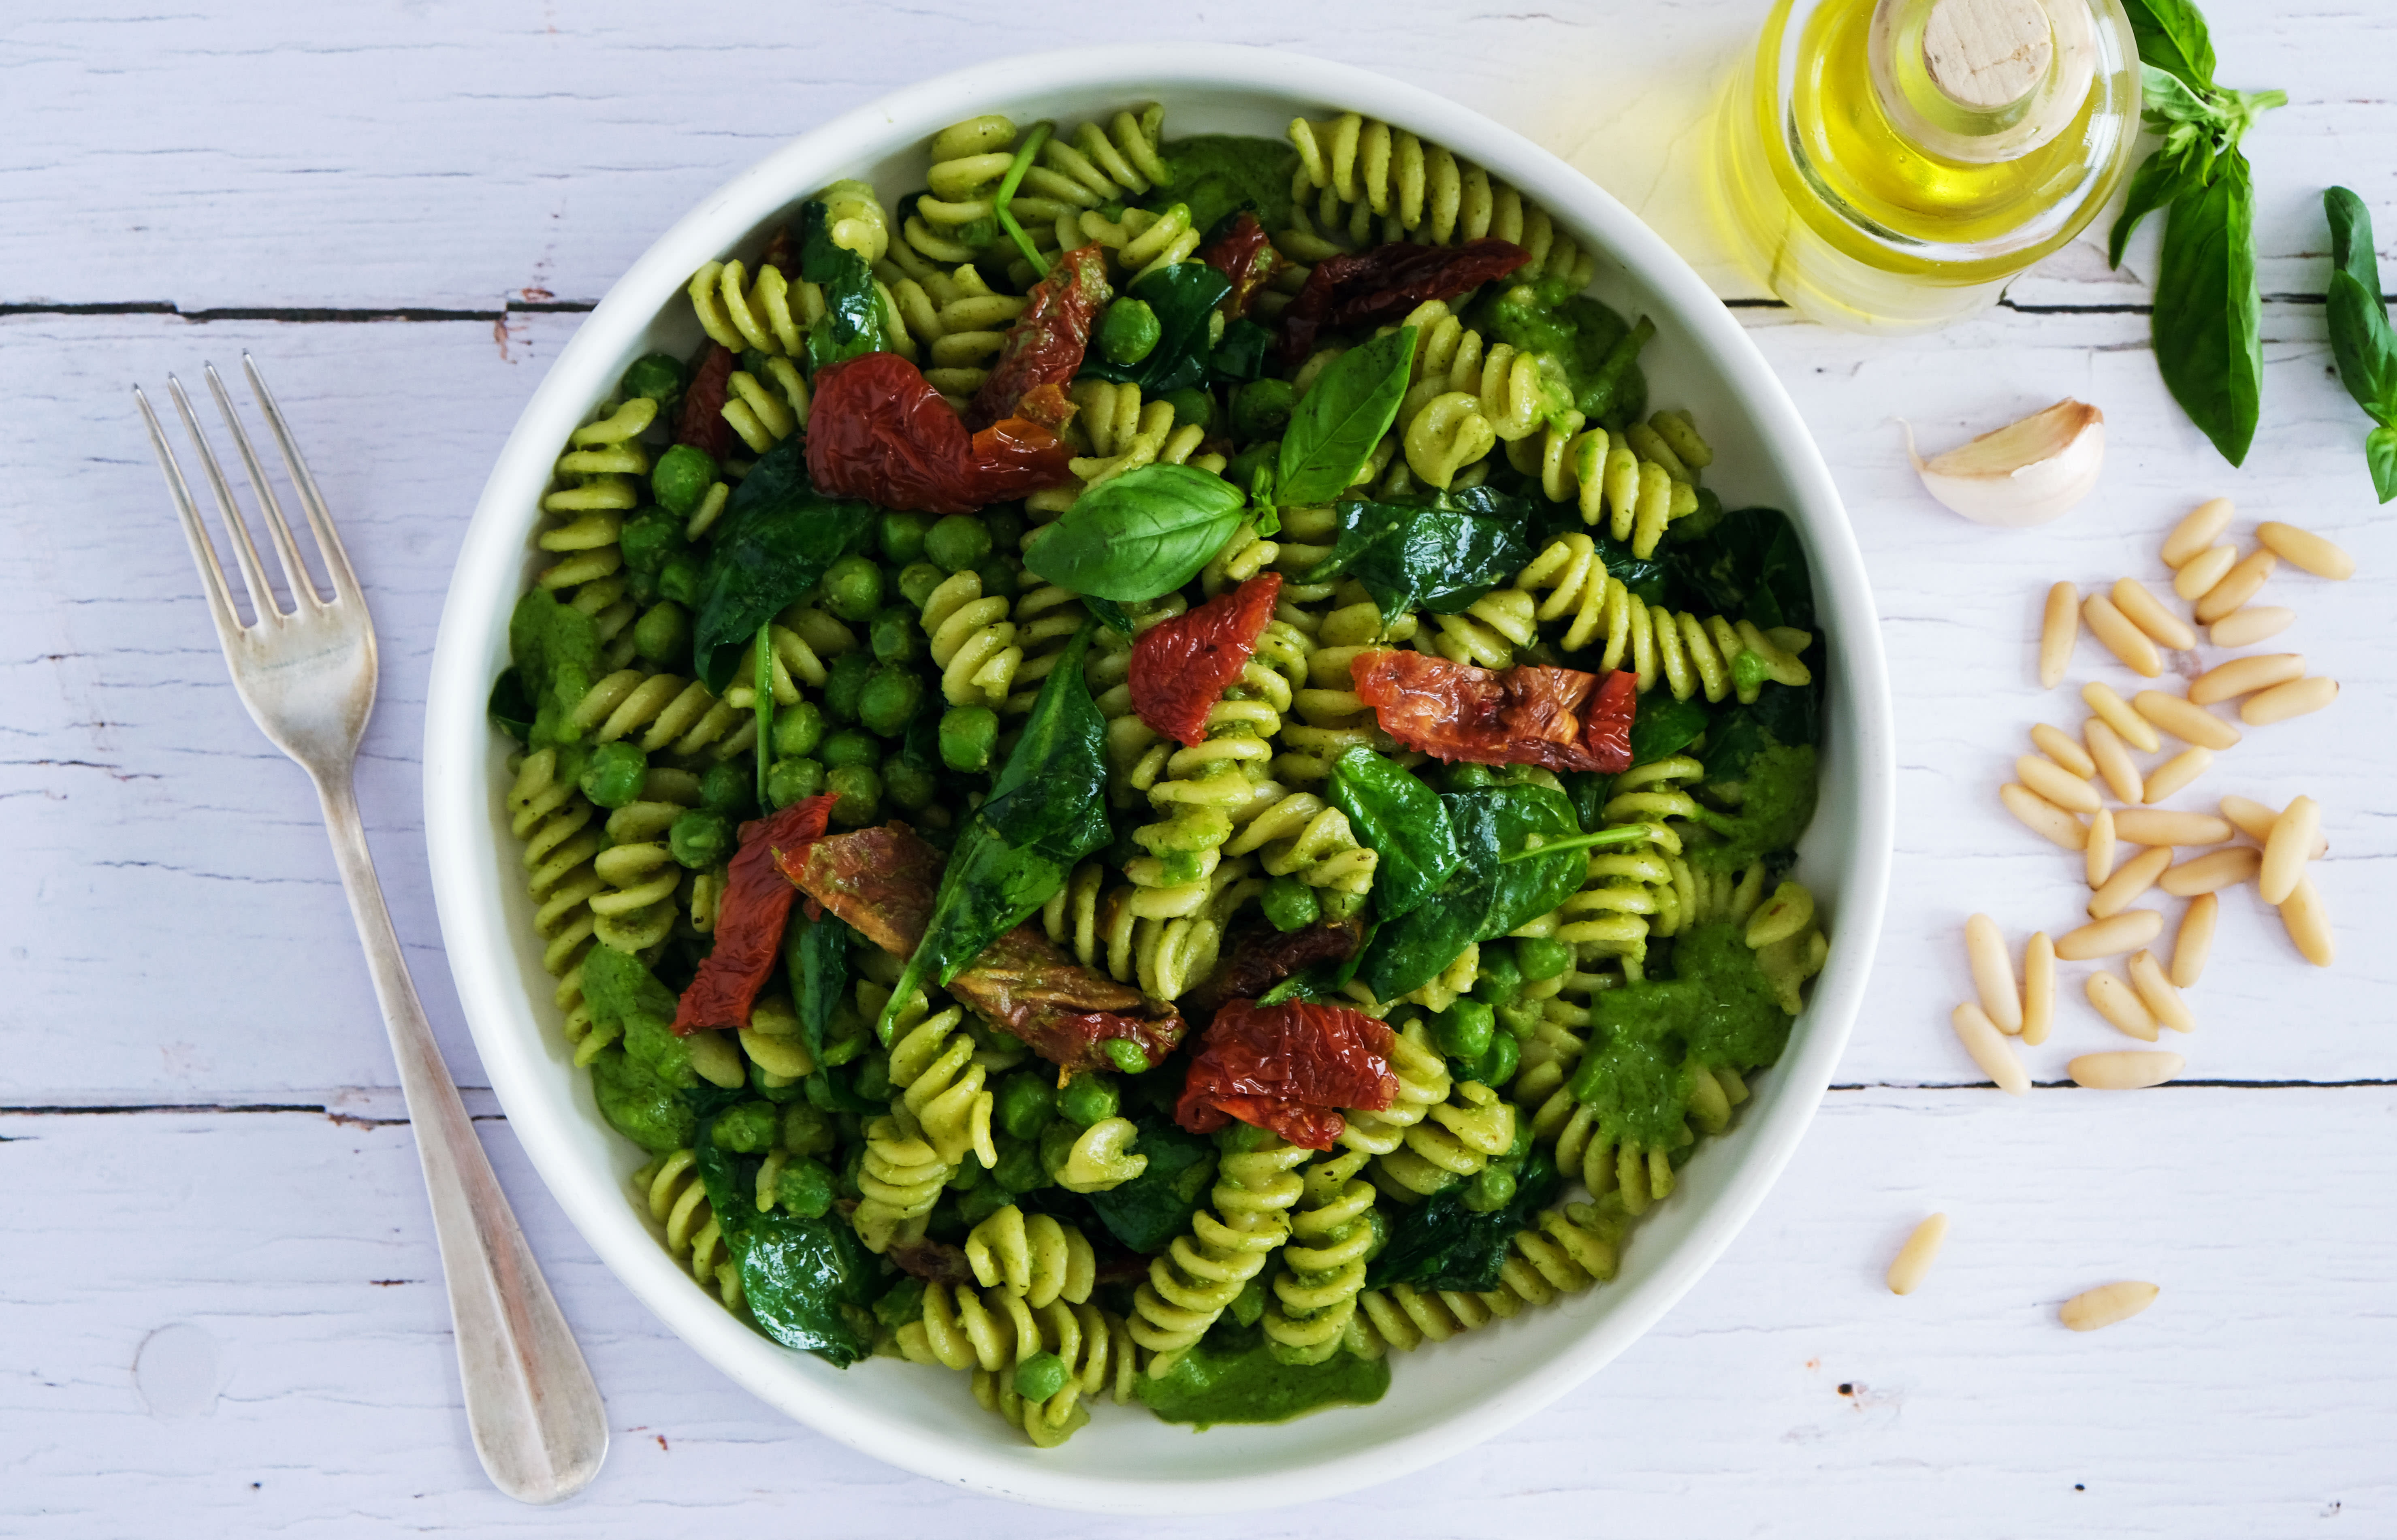 Vegan Pesto Pasta with Peas, Spinach and Sun-dried Tomatoes